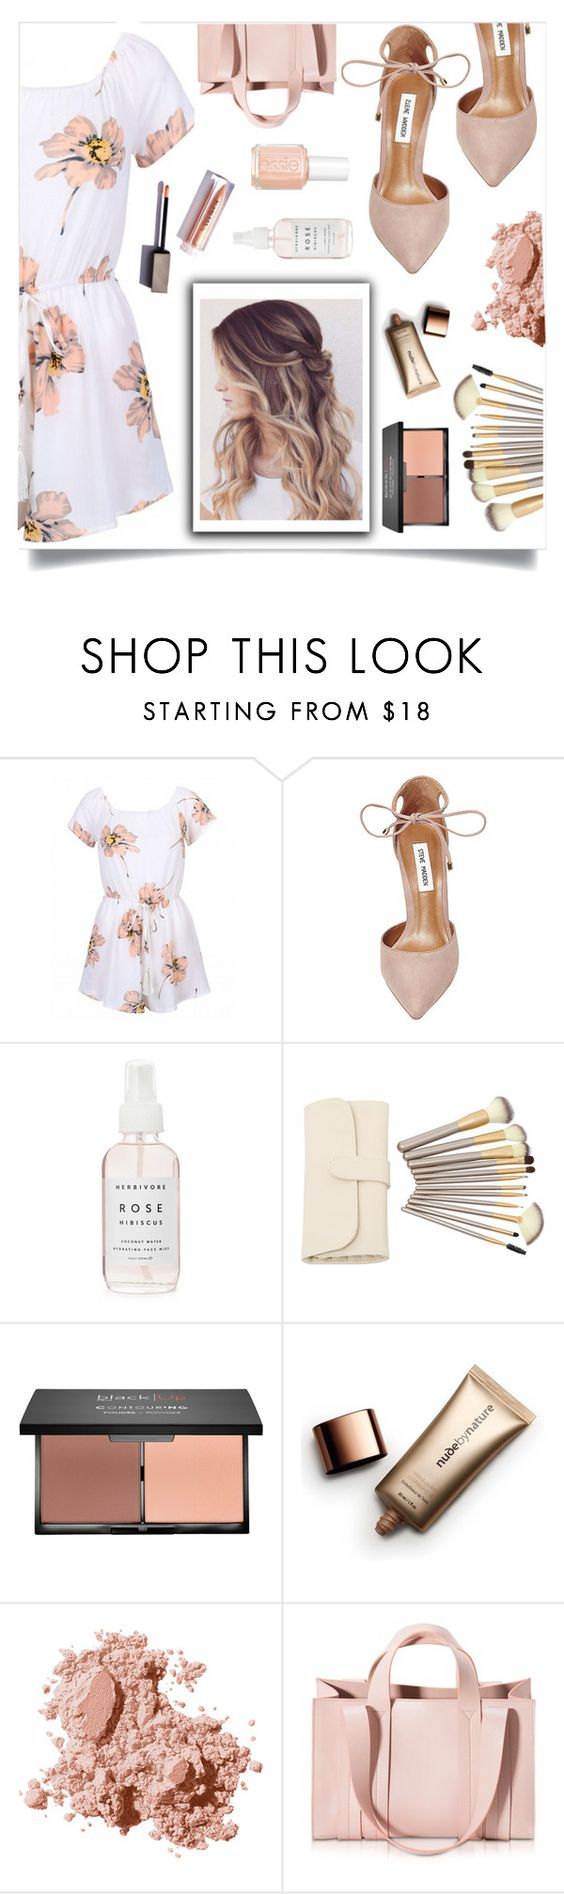 """""""long nights"""" by sikes-rachel ❤ liked on Polyvore featuring Steve Madden, Nude by Nature, Bobbi Brown Cosmetics, Corto Moltedo and Essie"""